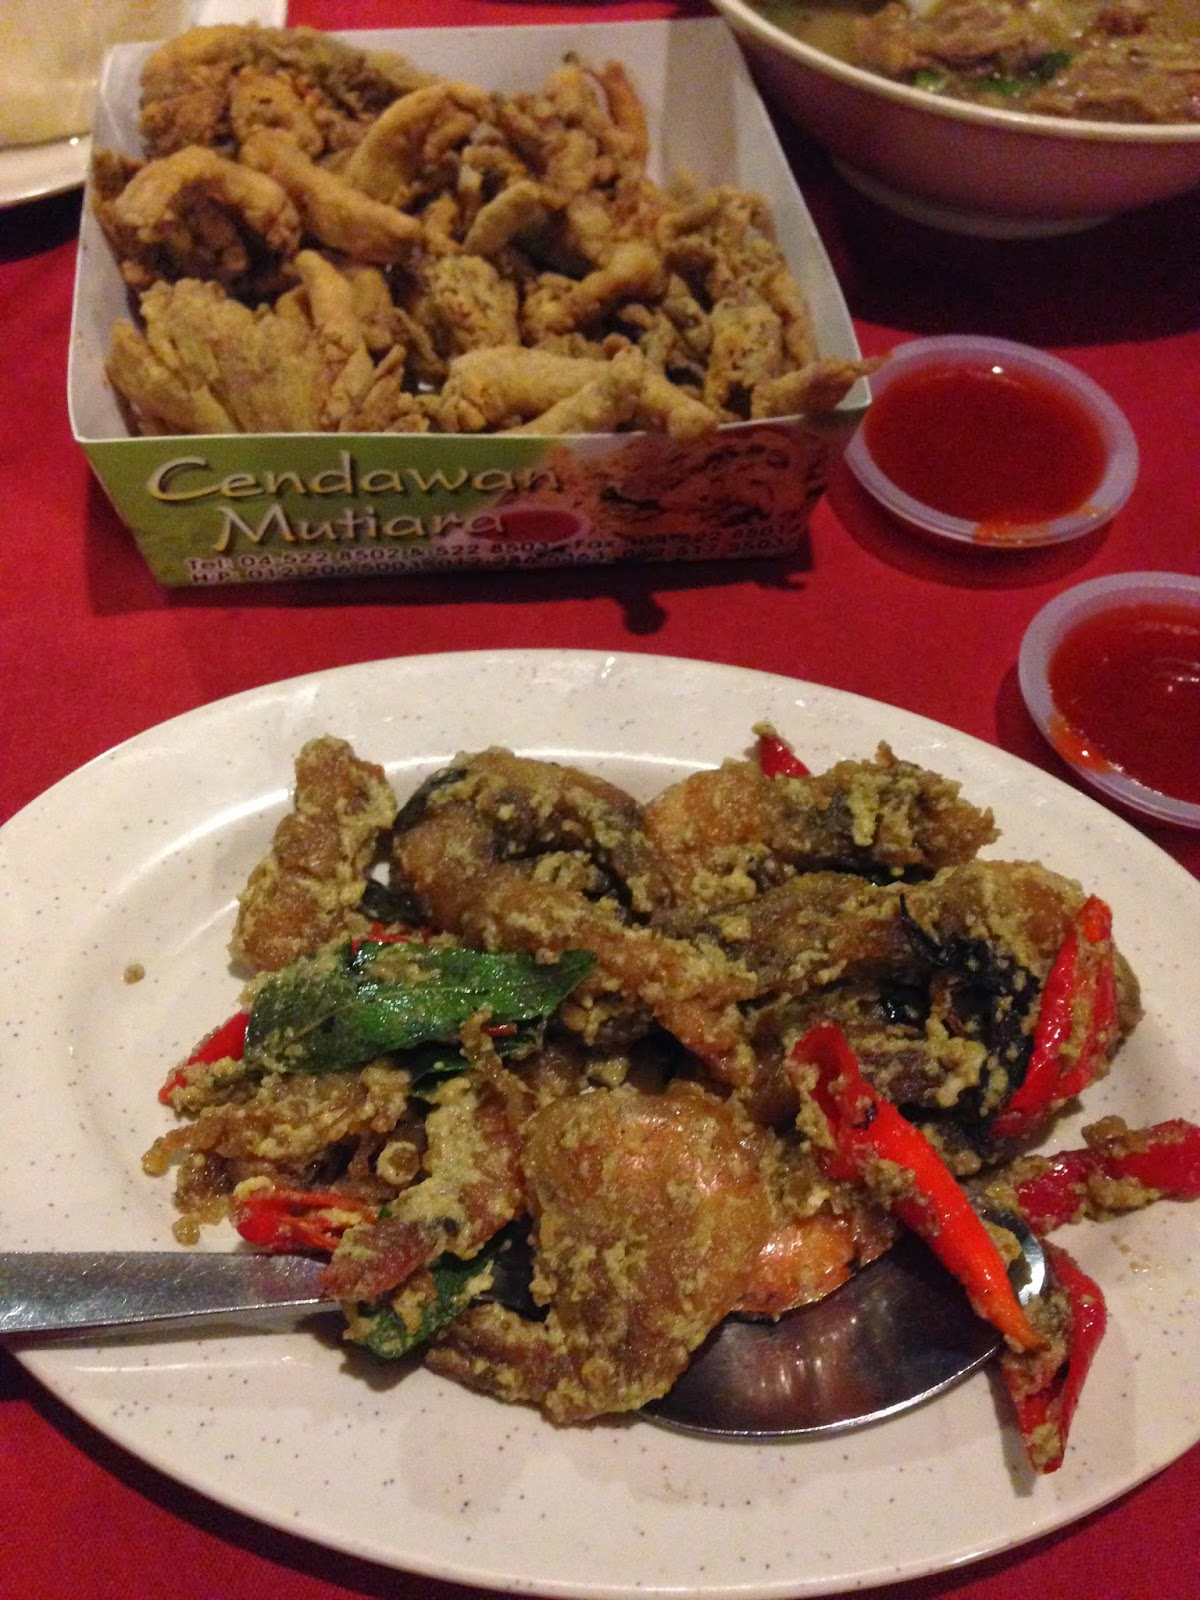 Butter prawn and cendawan mutiara at Puncak Mutiara Cafe